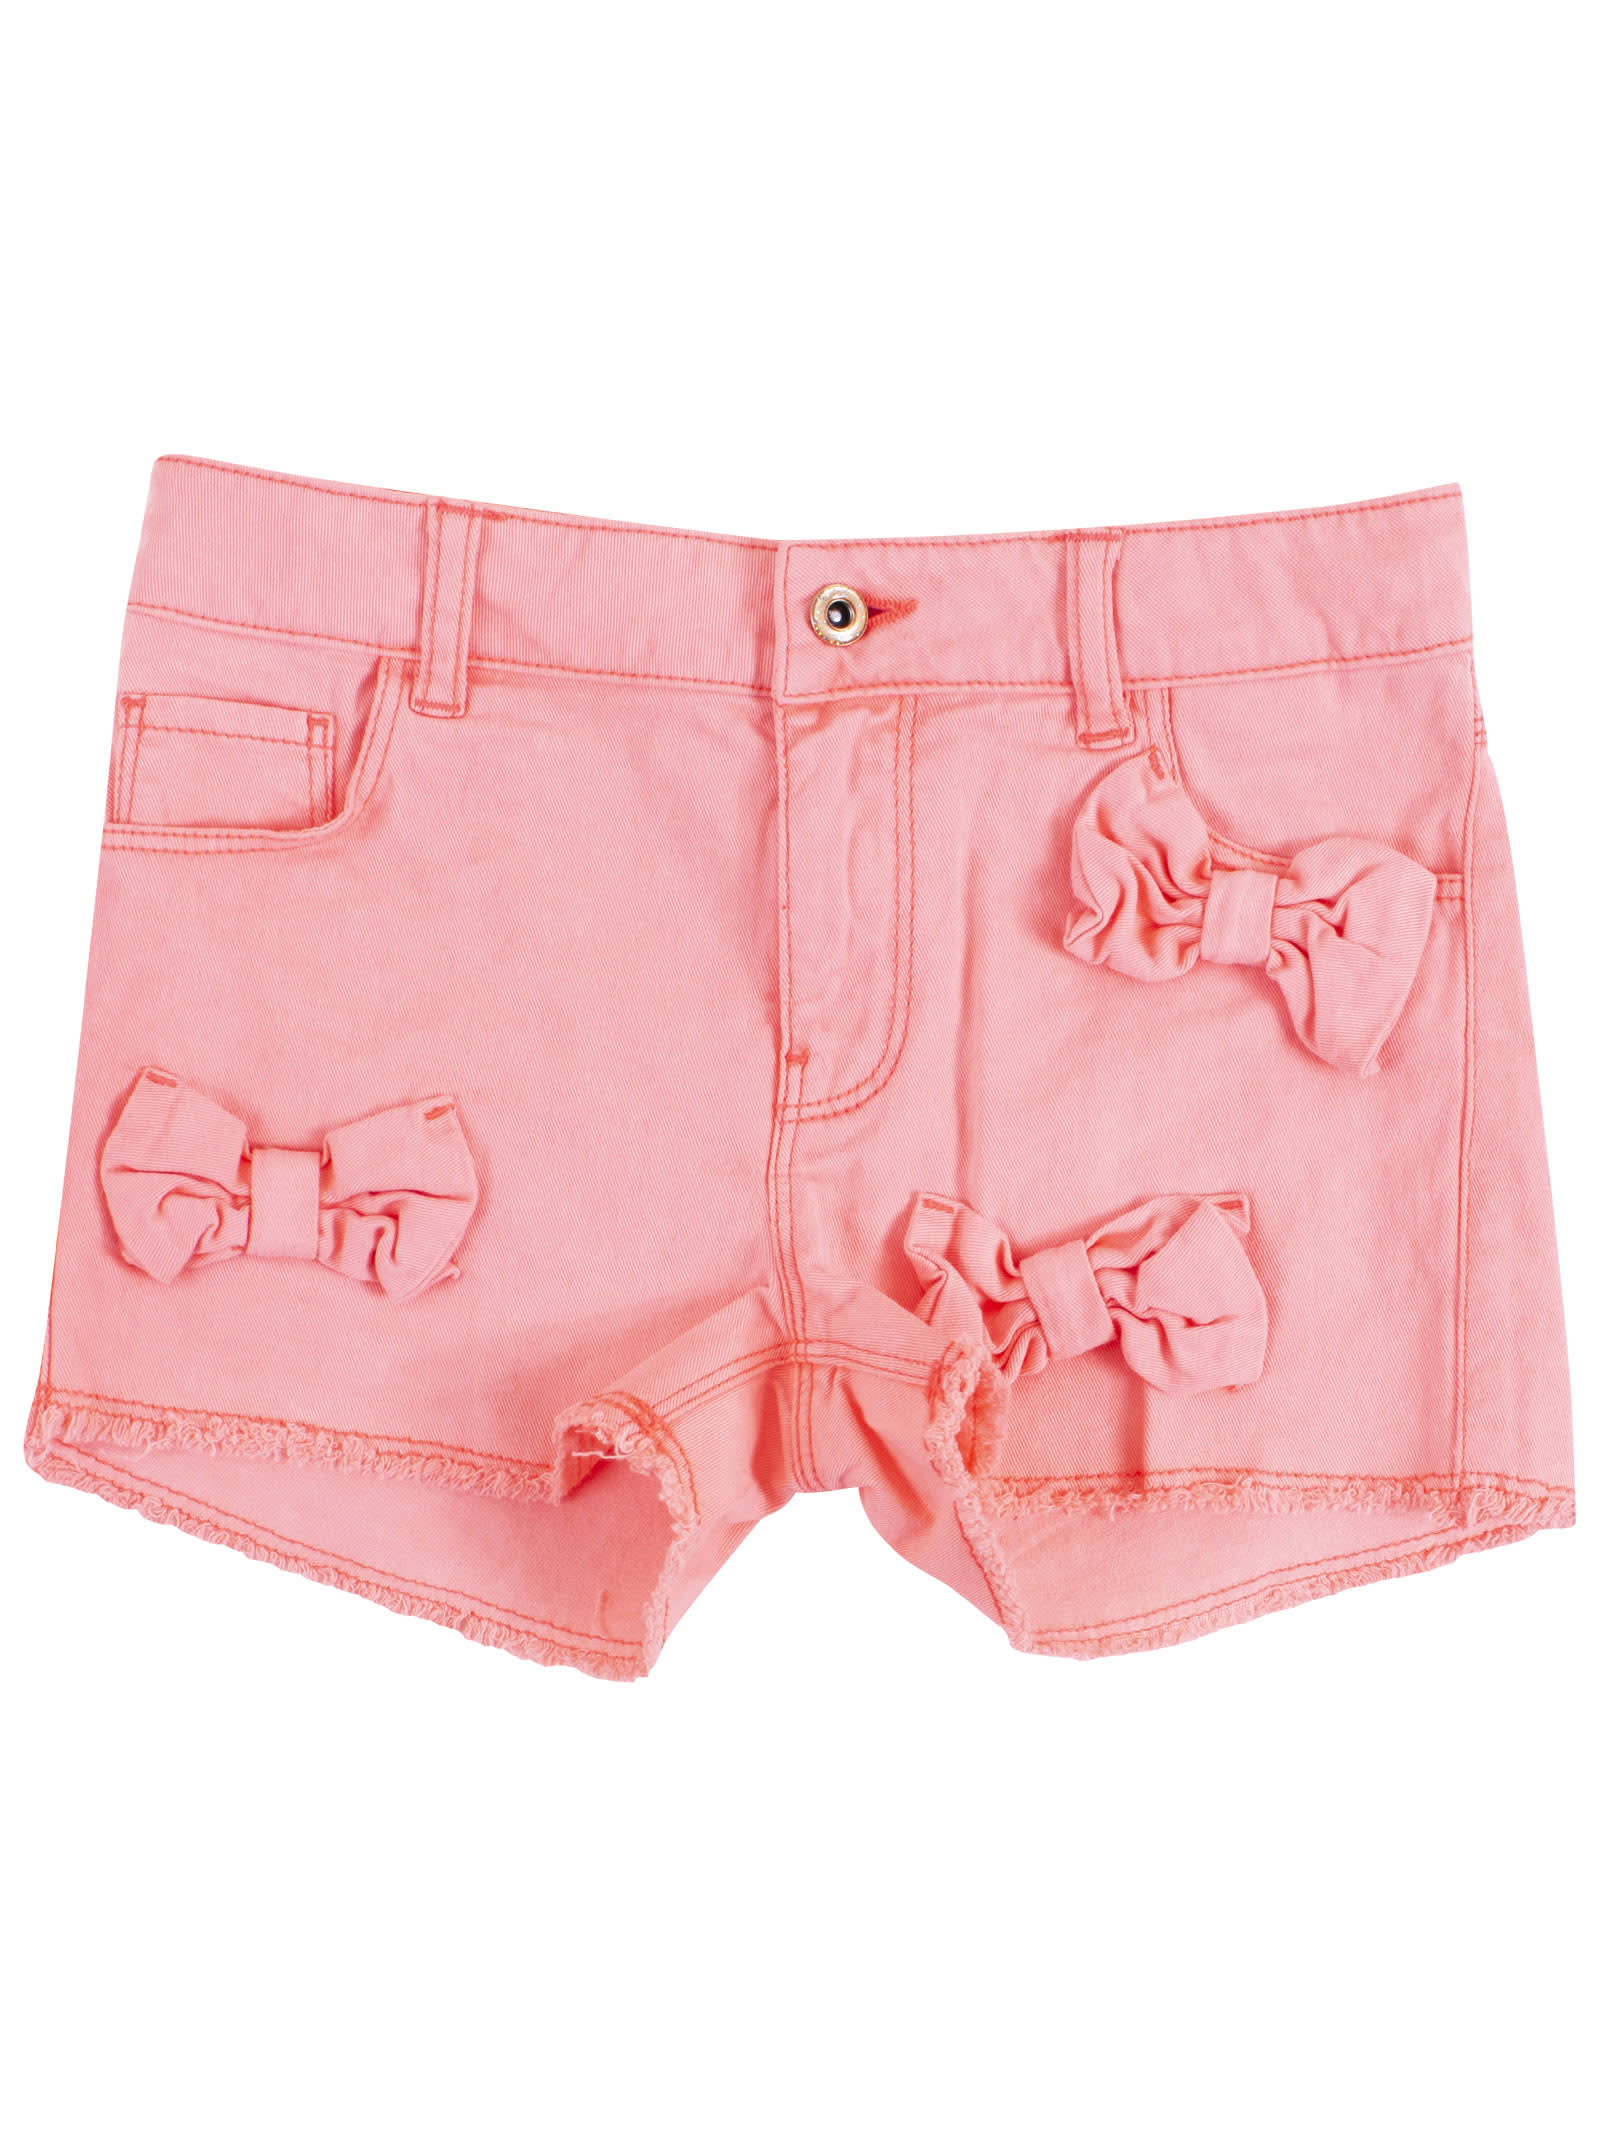 Little Girl Shorts With Bows